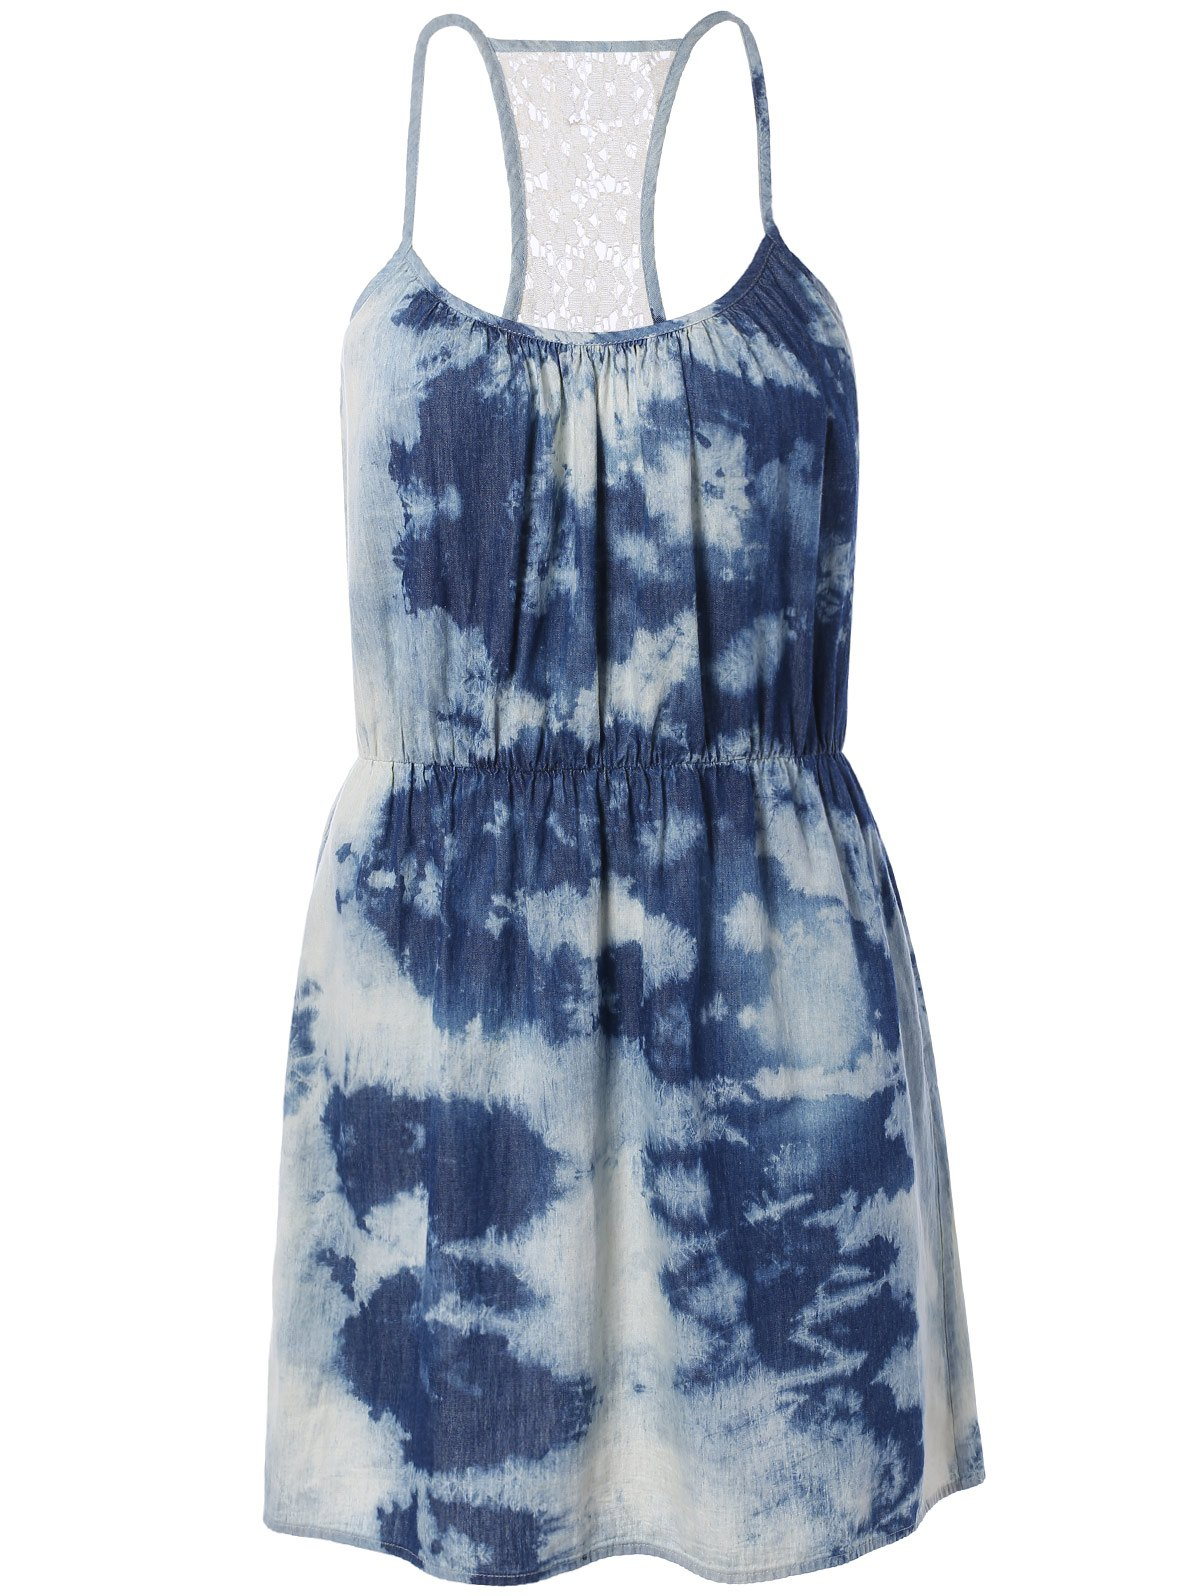 Spaghetti Strap Tie-Dyed Lace Spliced Dress - BLUE L